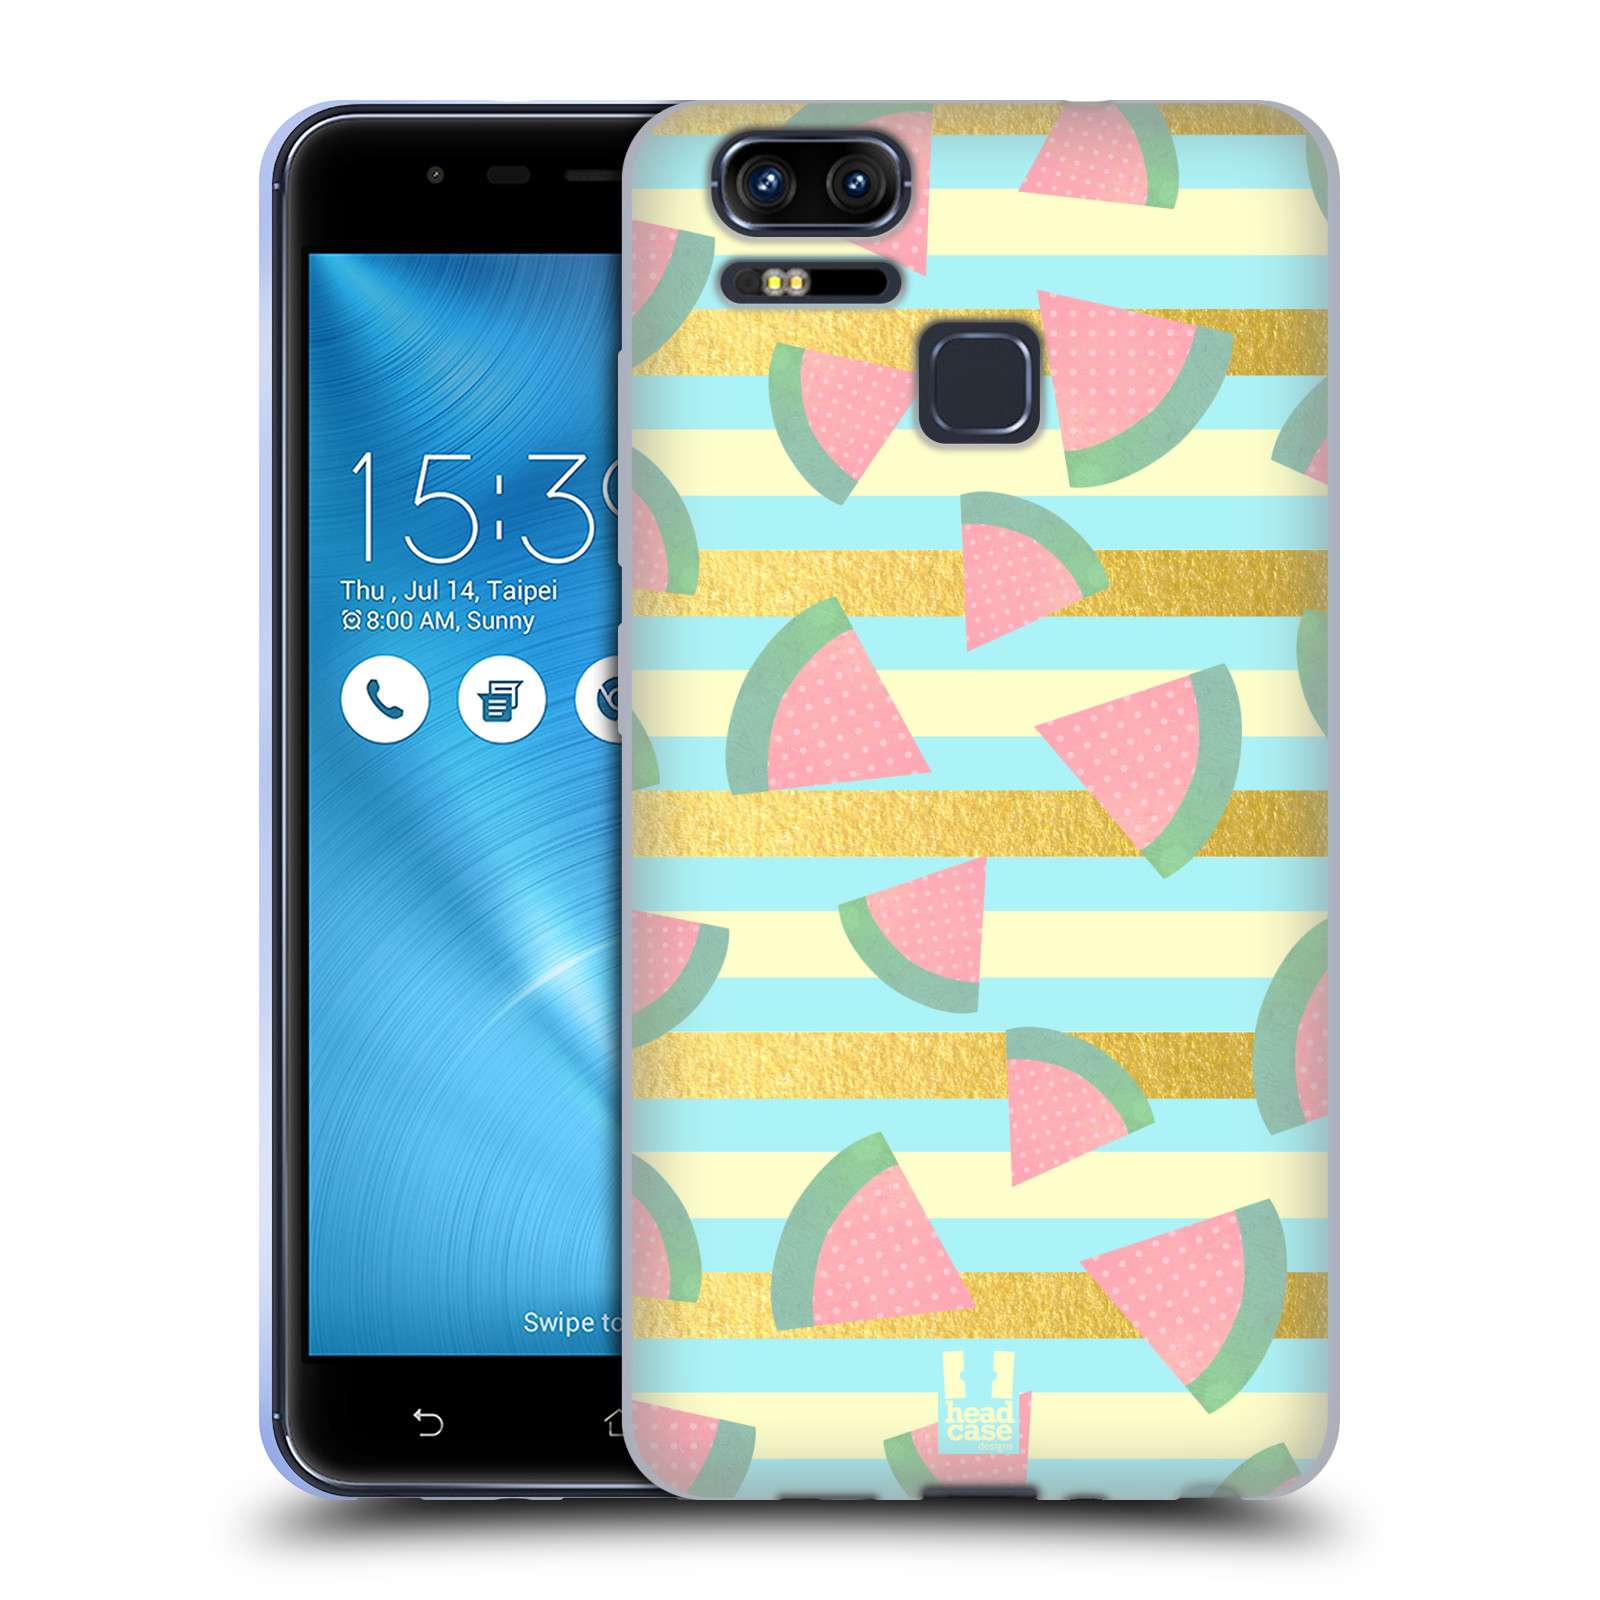 HEAD-CASE-DESIGNS-FANCY-SWEET-PATTERNS-GEL-CASE-FOR-ASUS-ZENFONE-3-ZOOM-ZE553KL